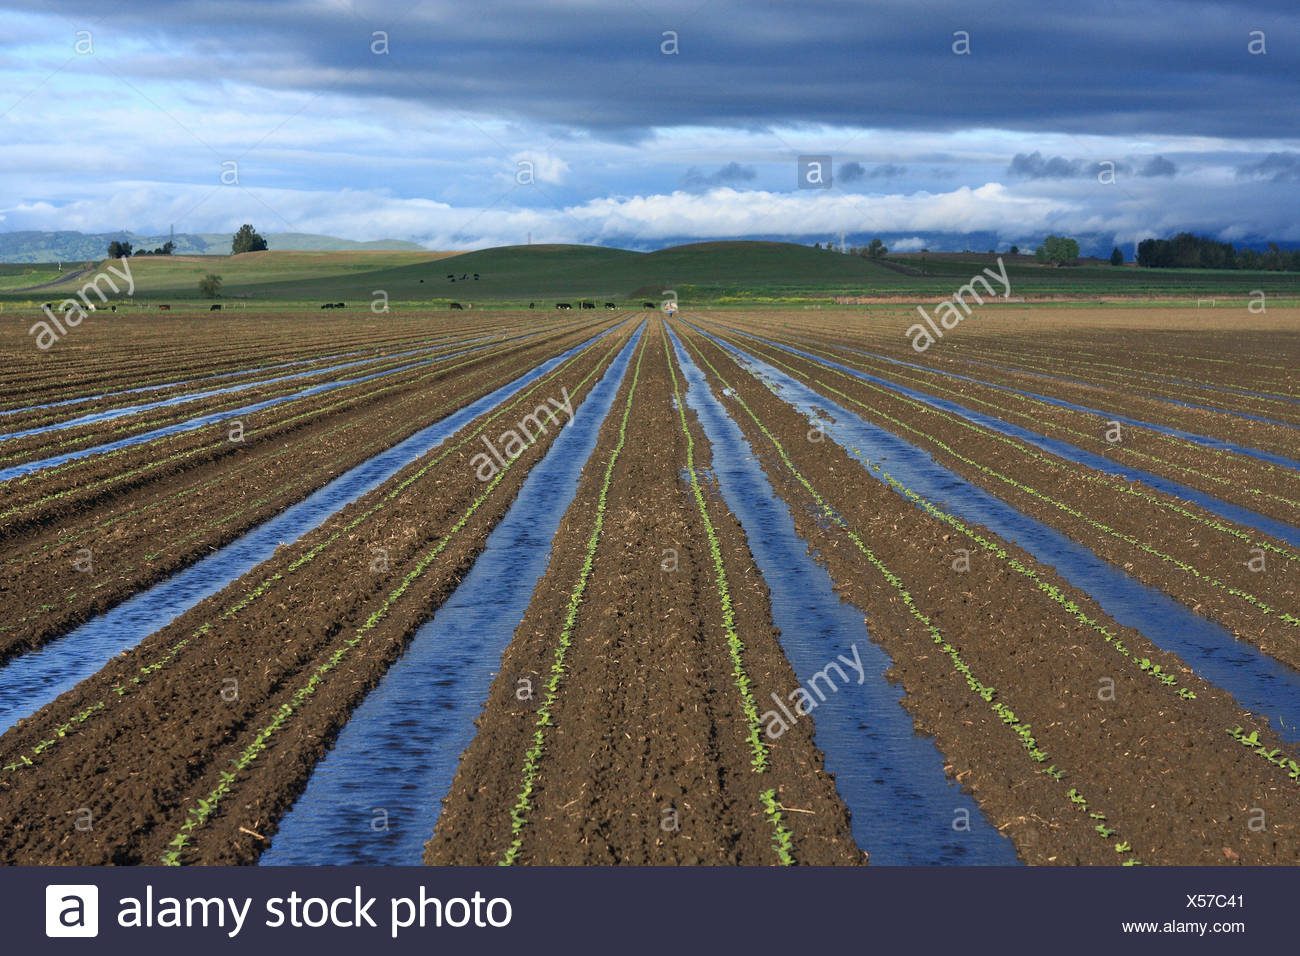 Agriculture - Field of seedling sunflower plants being furrow irrigated / California, USA. - Stock Image